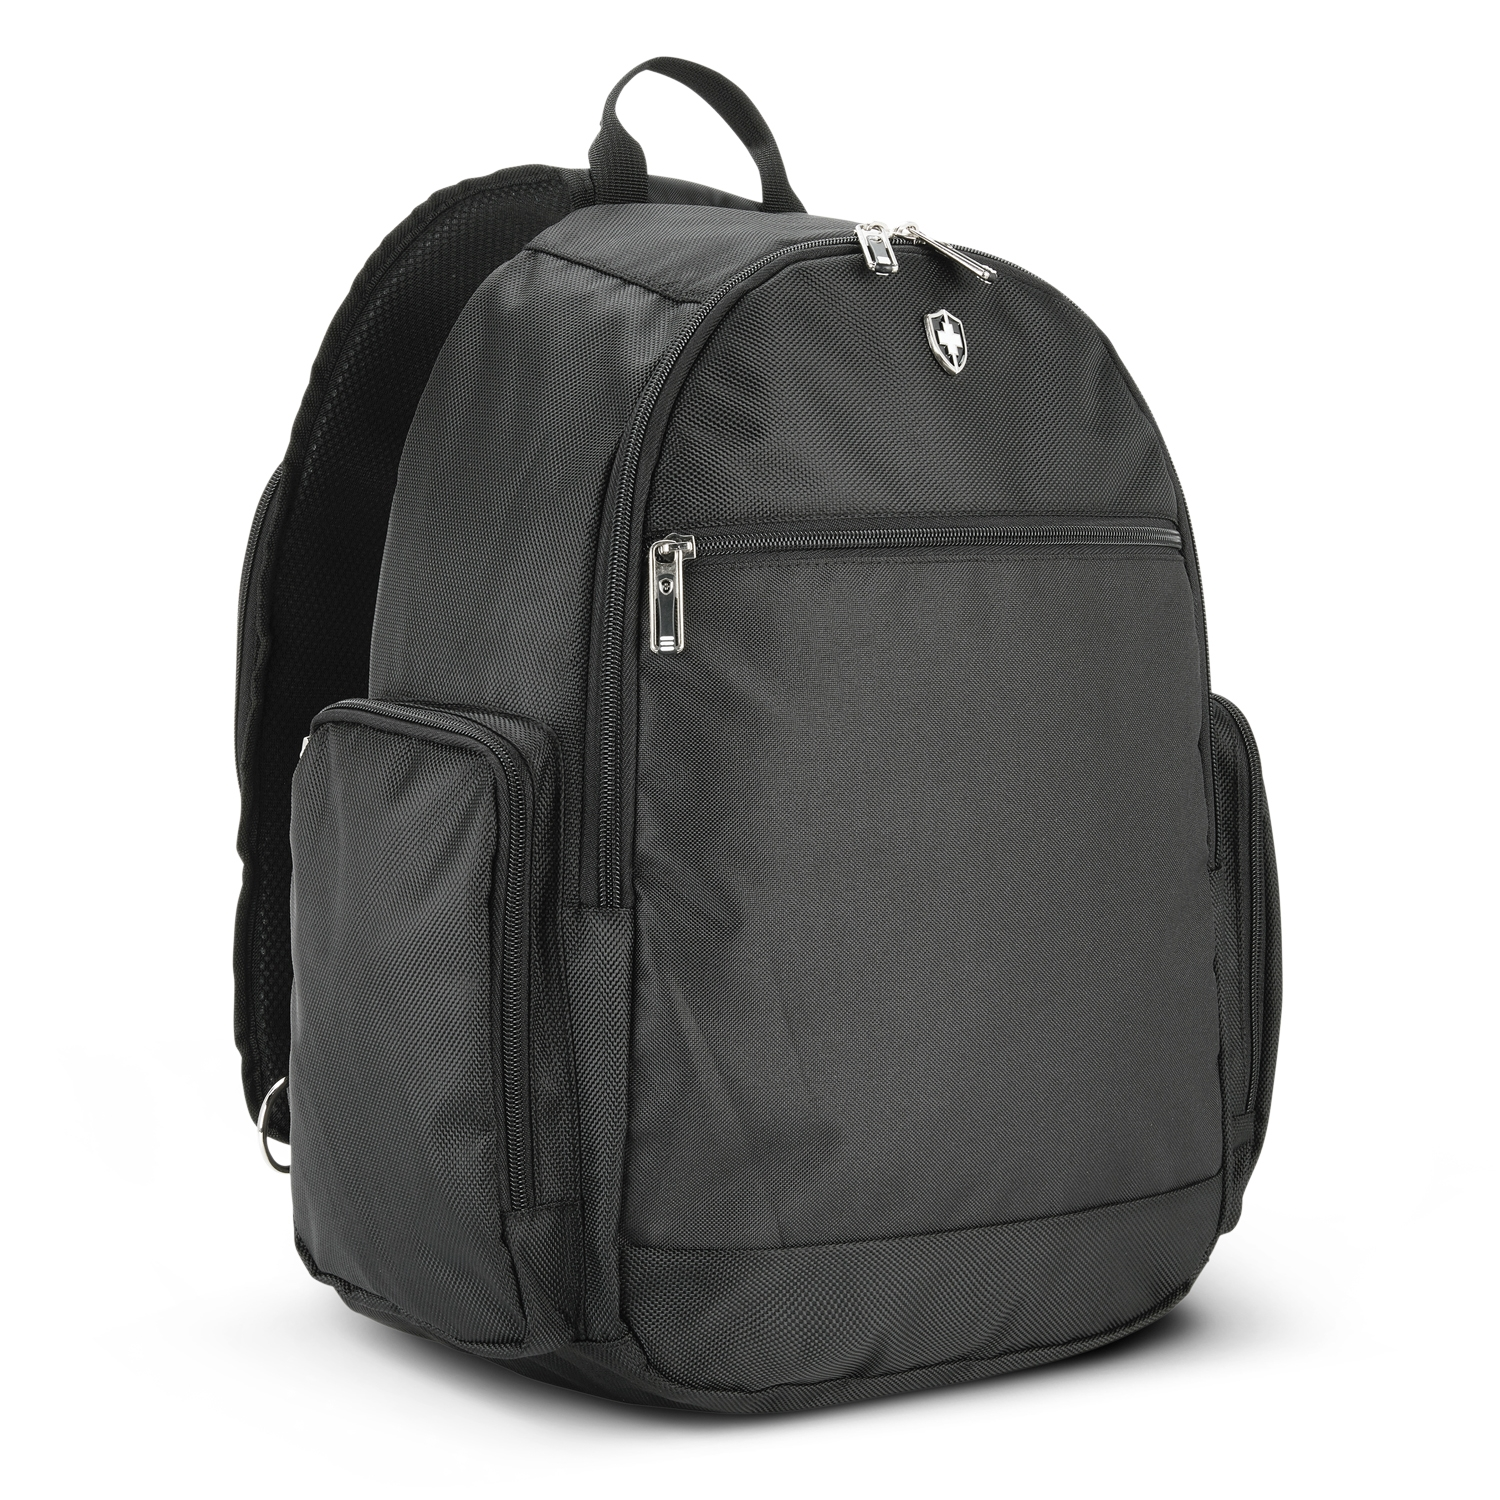 Swiss Peak Sling Laptop Backpack - Printing Per Col/Pos